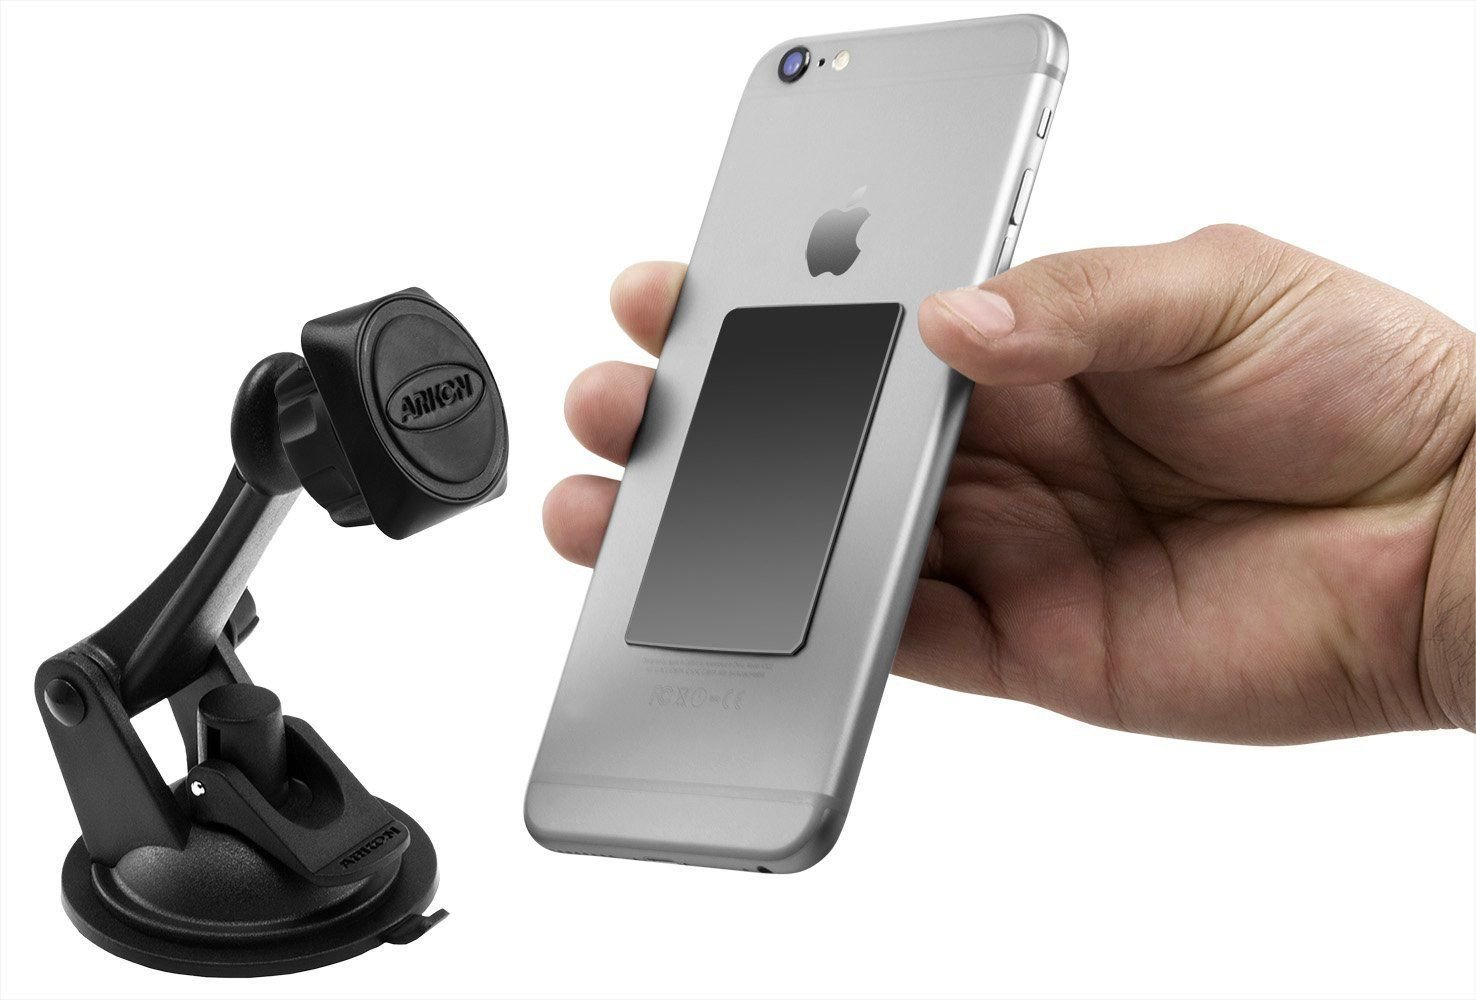 New Arkon Magnetic Phone Mount Holder for Galaxy S4, S5, S6 LG G2, G3 iPhone 6